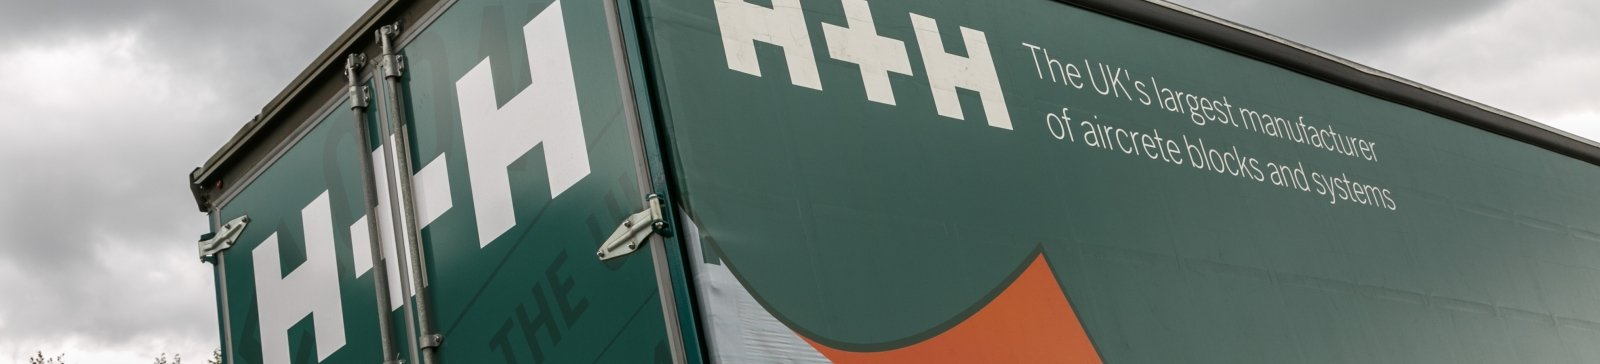 HH Branded Lorry